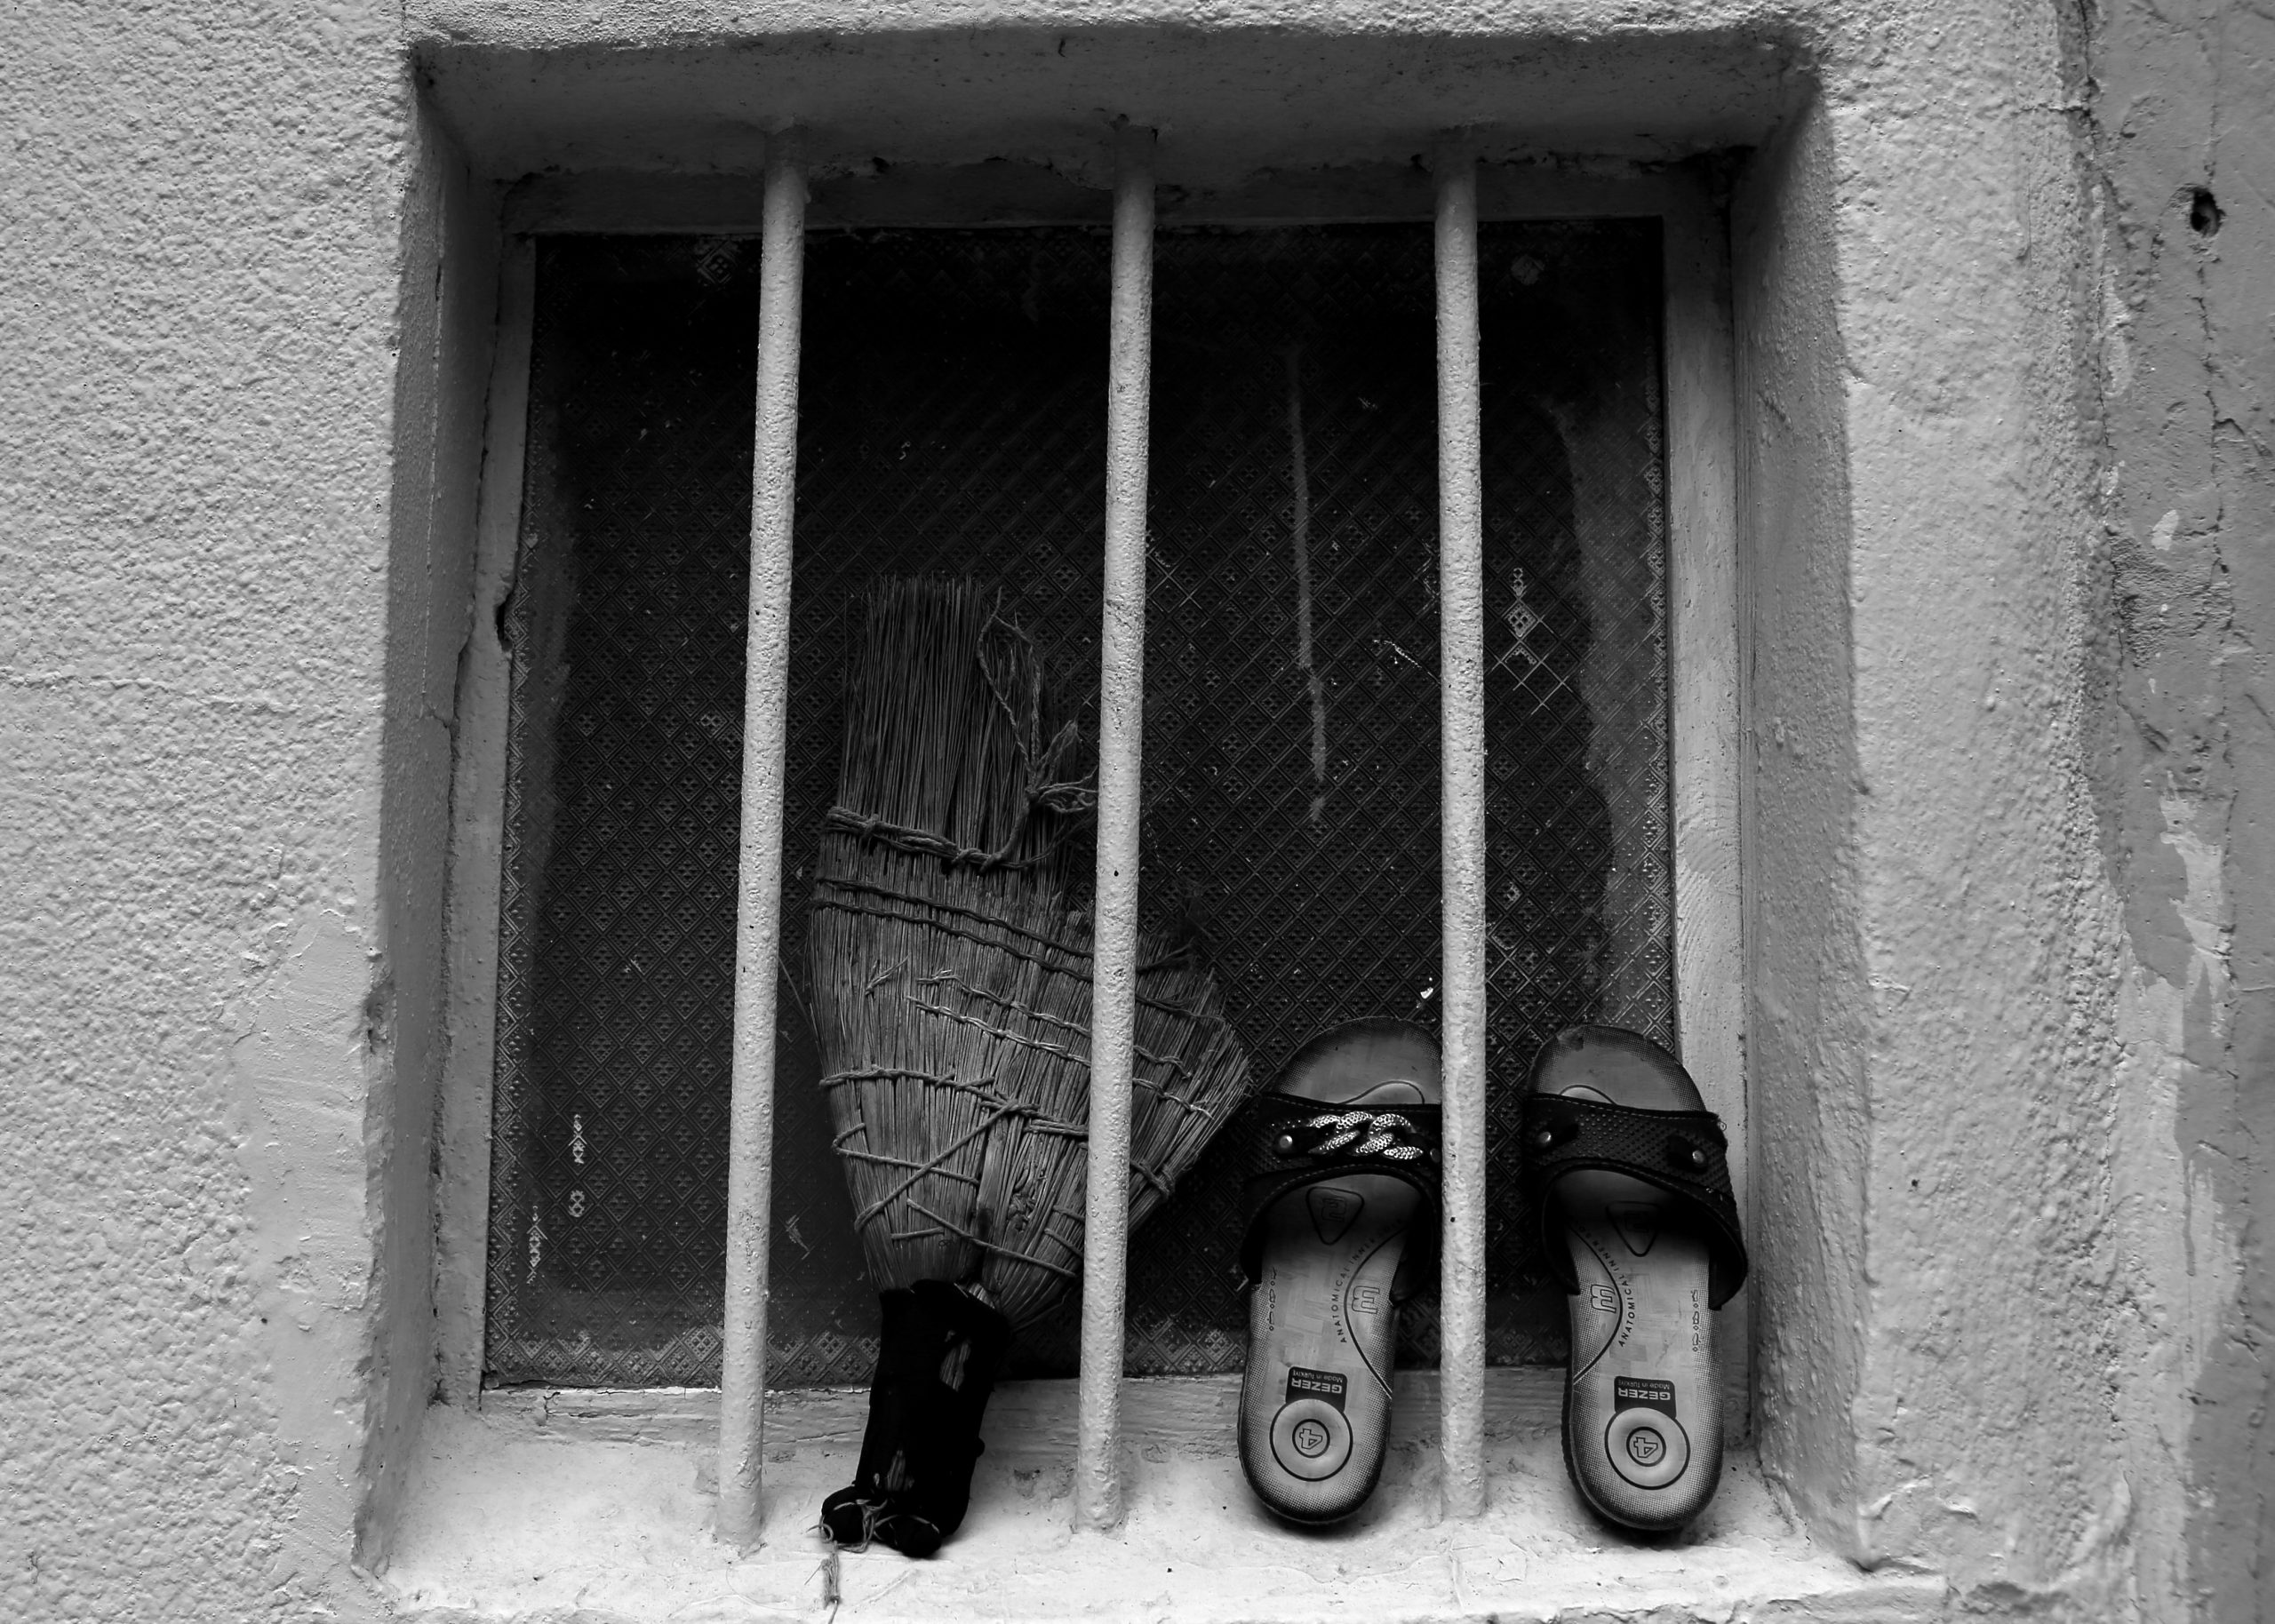 Slippers and broom in front of the window